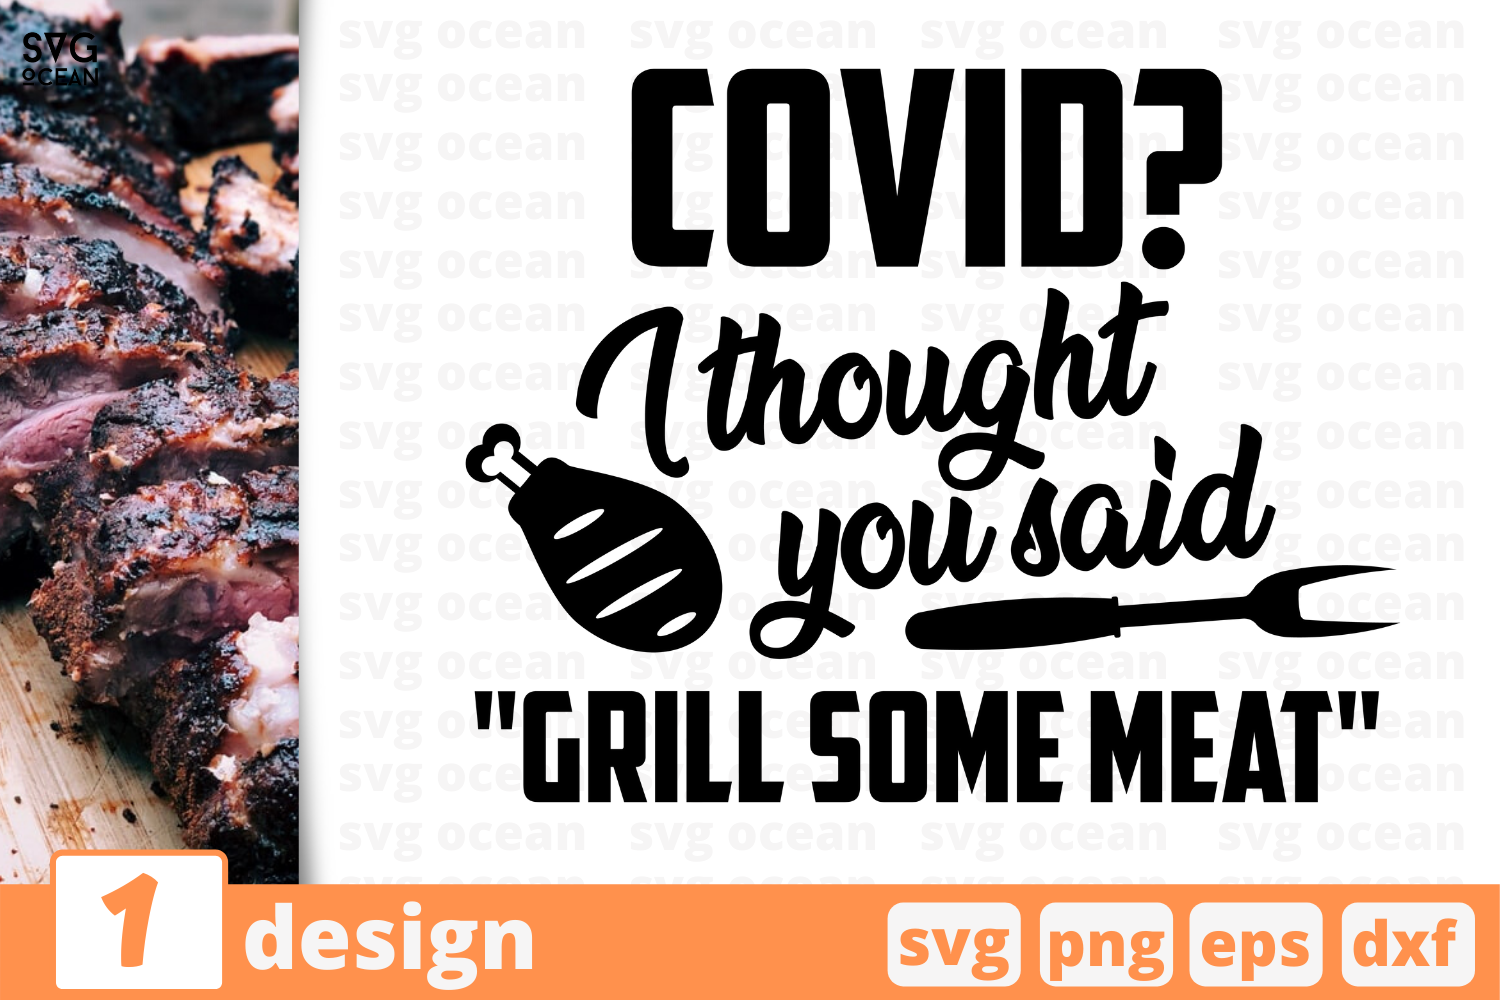 Download Free Grill Some Meat Graphic By Svgocean Creative Fabrica for Cricut Explore, Silhouette and other cutting machines.